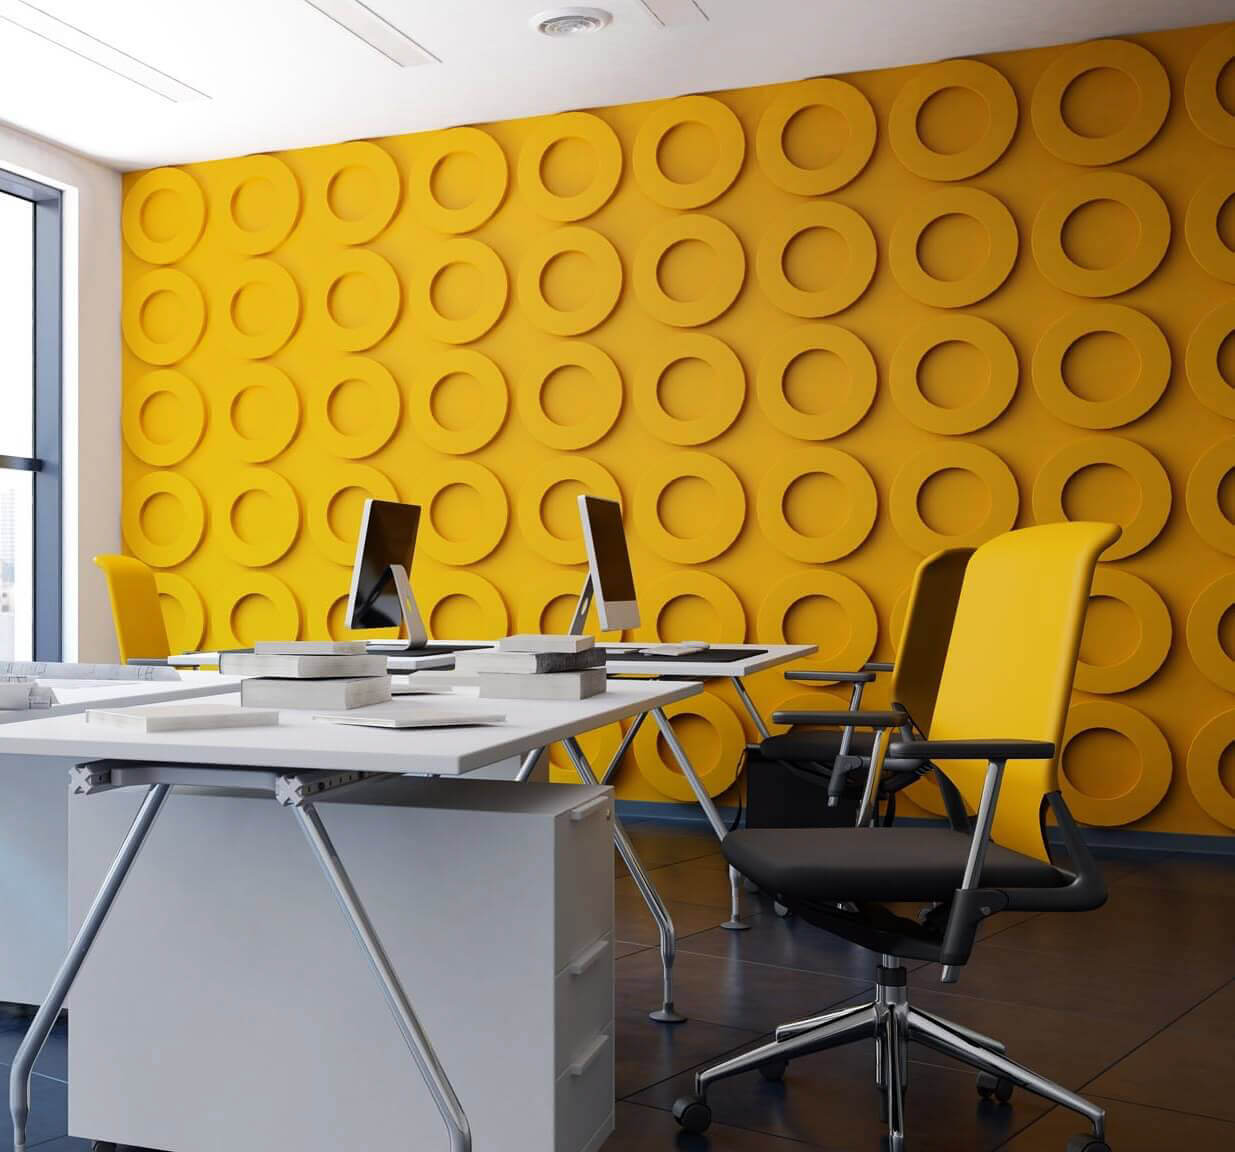 Office with large window and yellow feature walls with yellow circles and yellow backed office chairs.